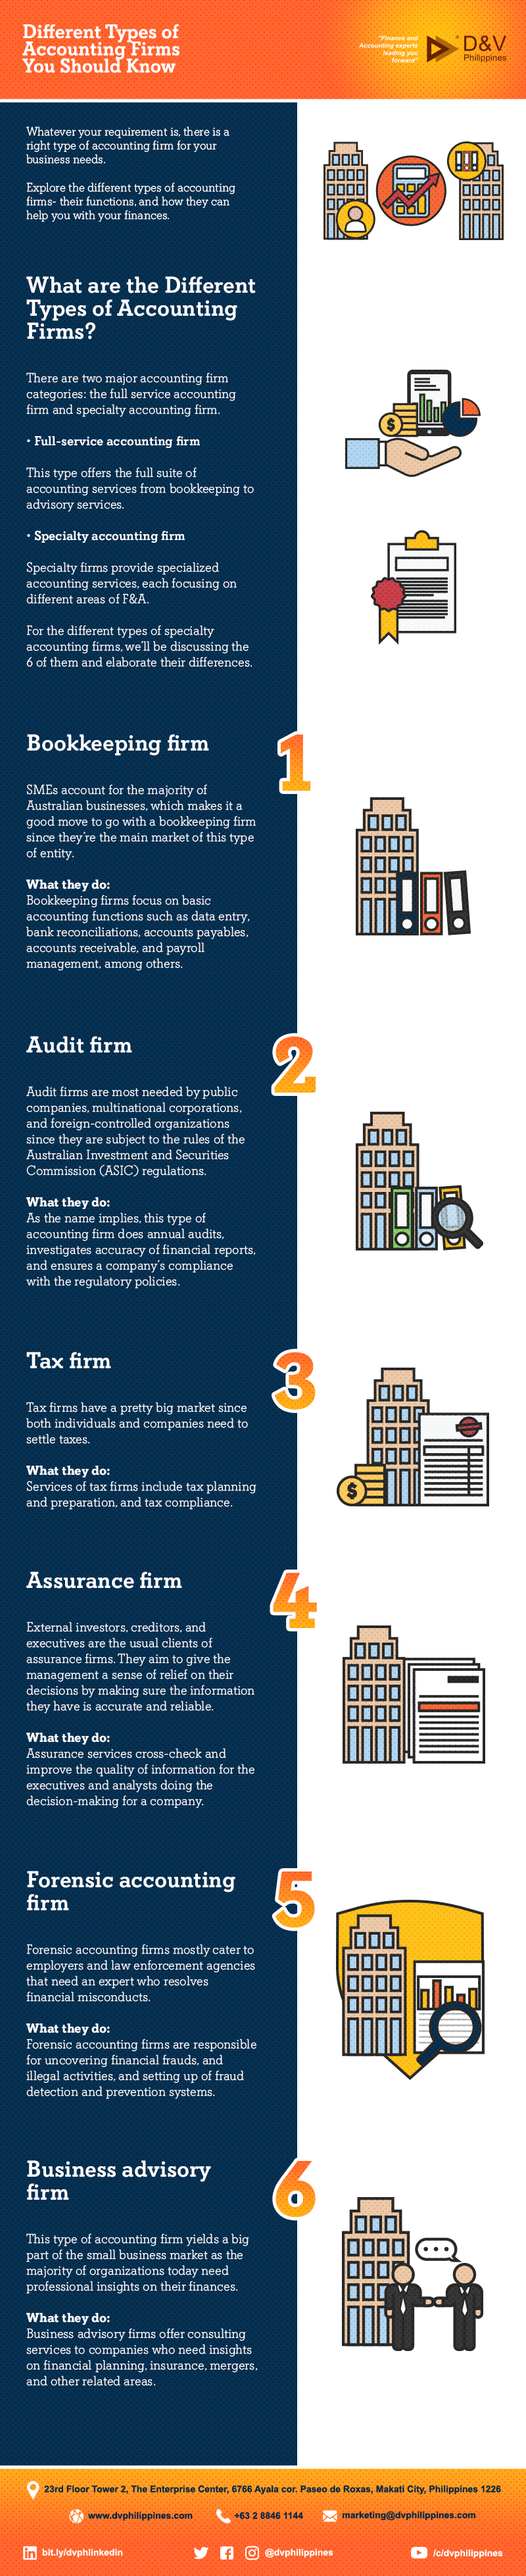 Infog_W_C_Different-Types-of-Accounting-Firms-You-Should-KnowMain